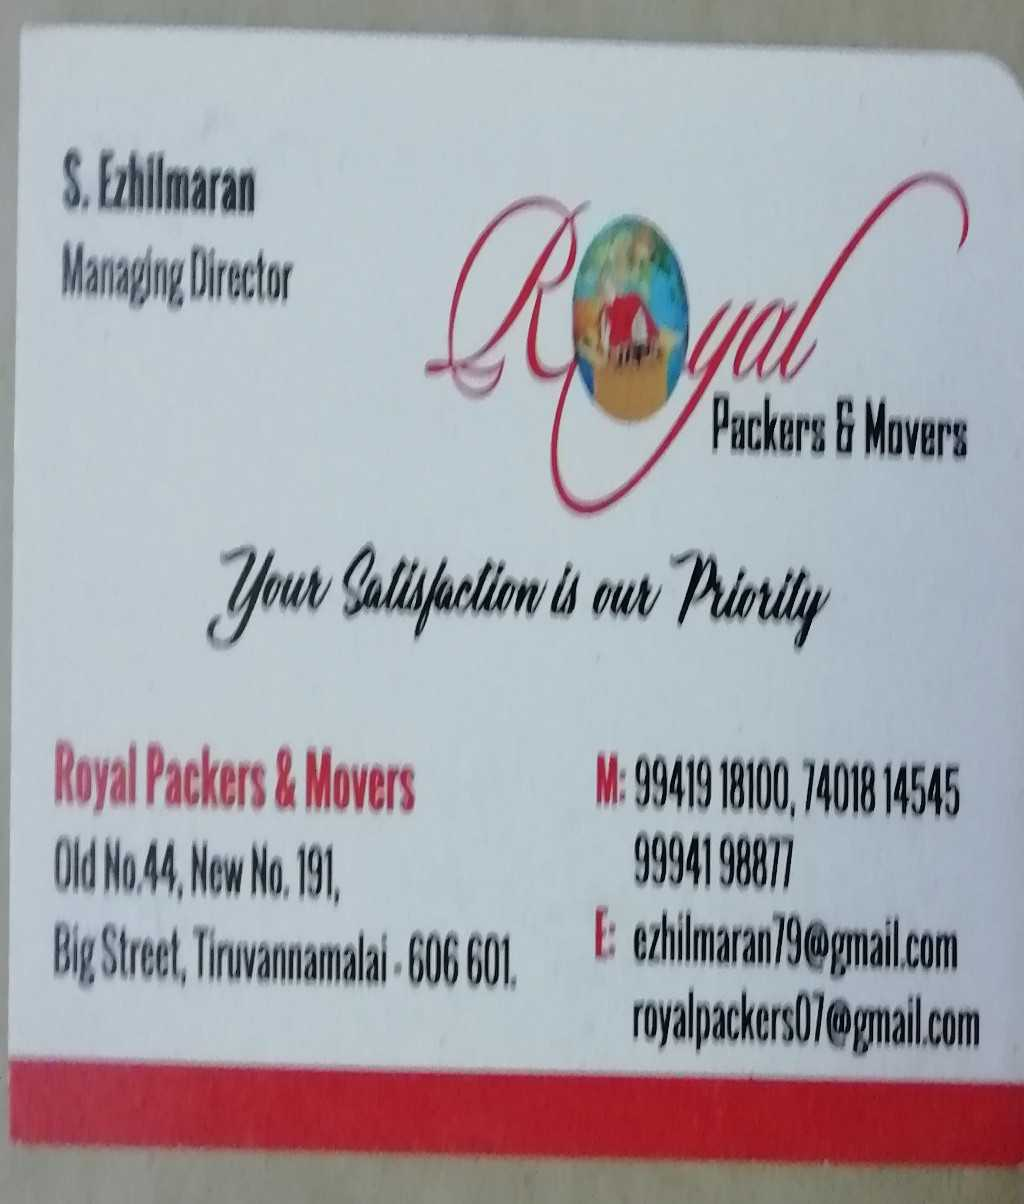 Royal Packers & Movers